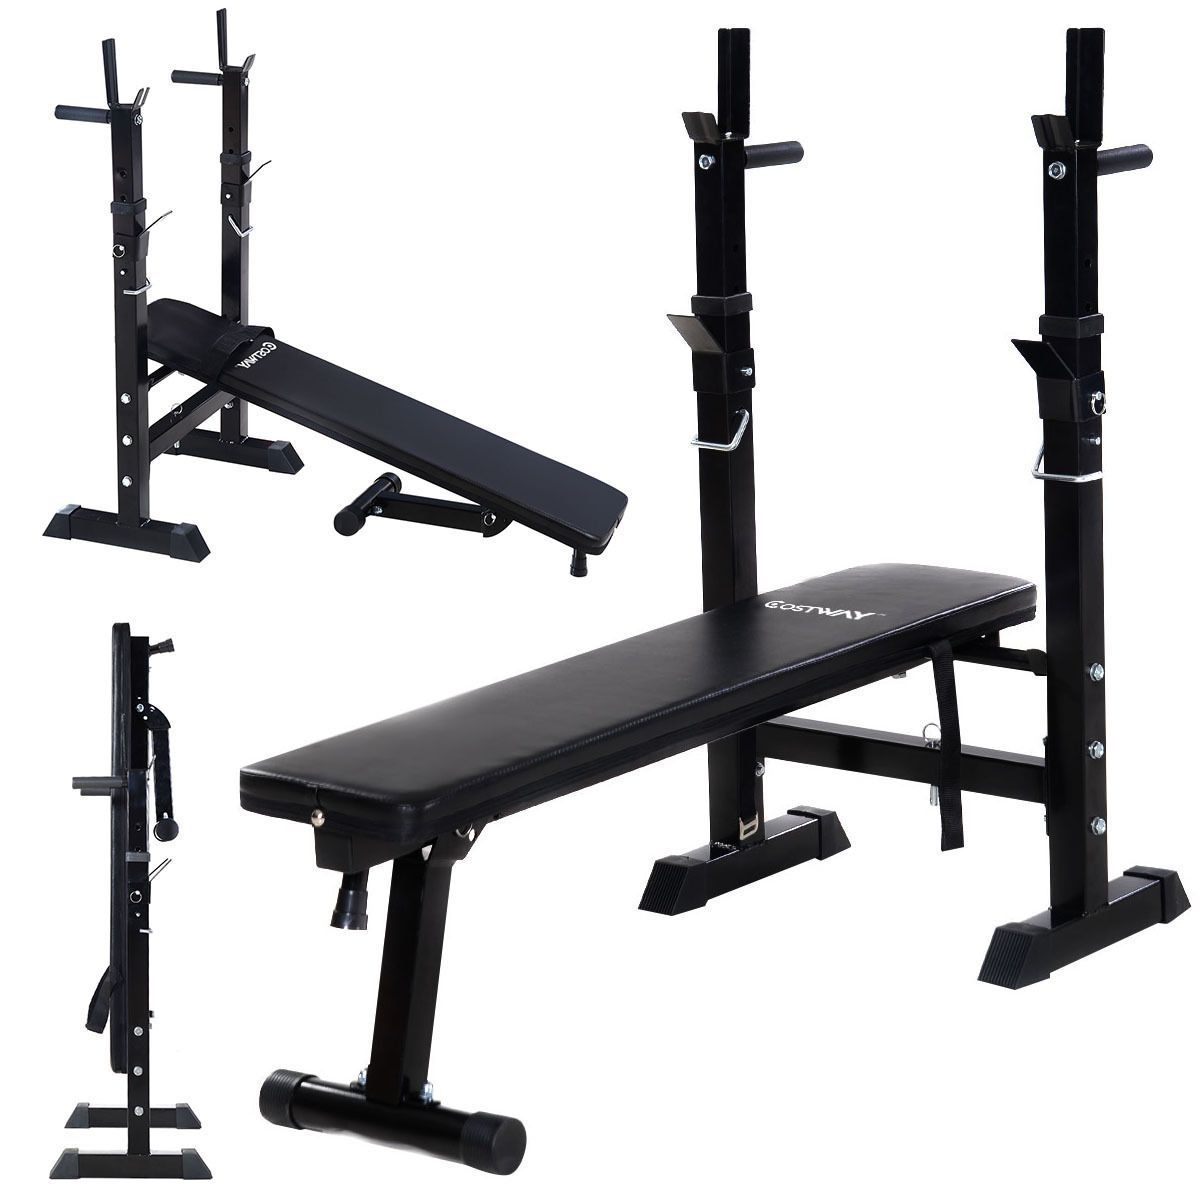 Product Description Description: This Is Our New Foldable Weight Bench,  Which Makes Work More Effective, As Well As Adds Strength And Tone To The  Entire ...